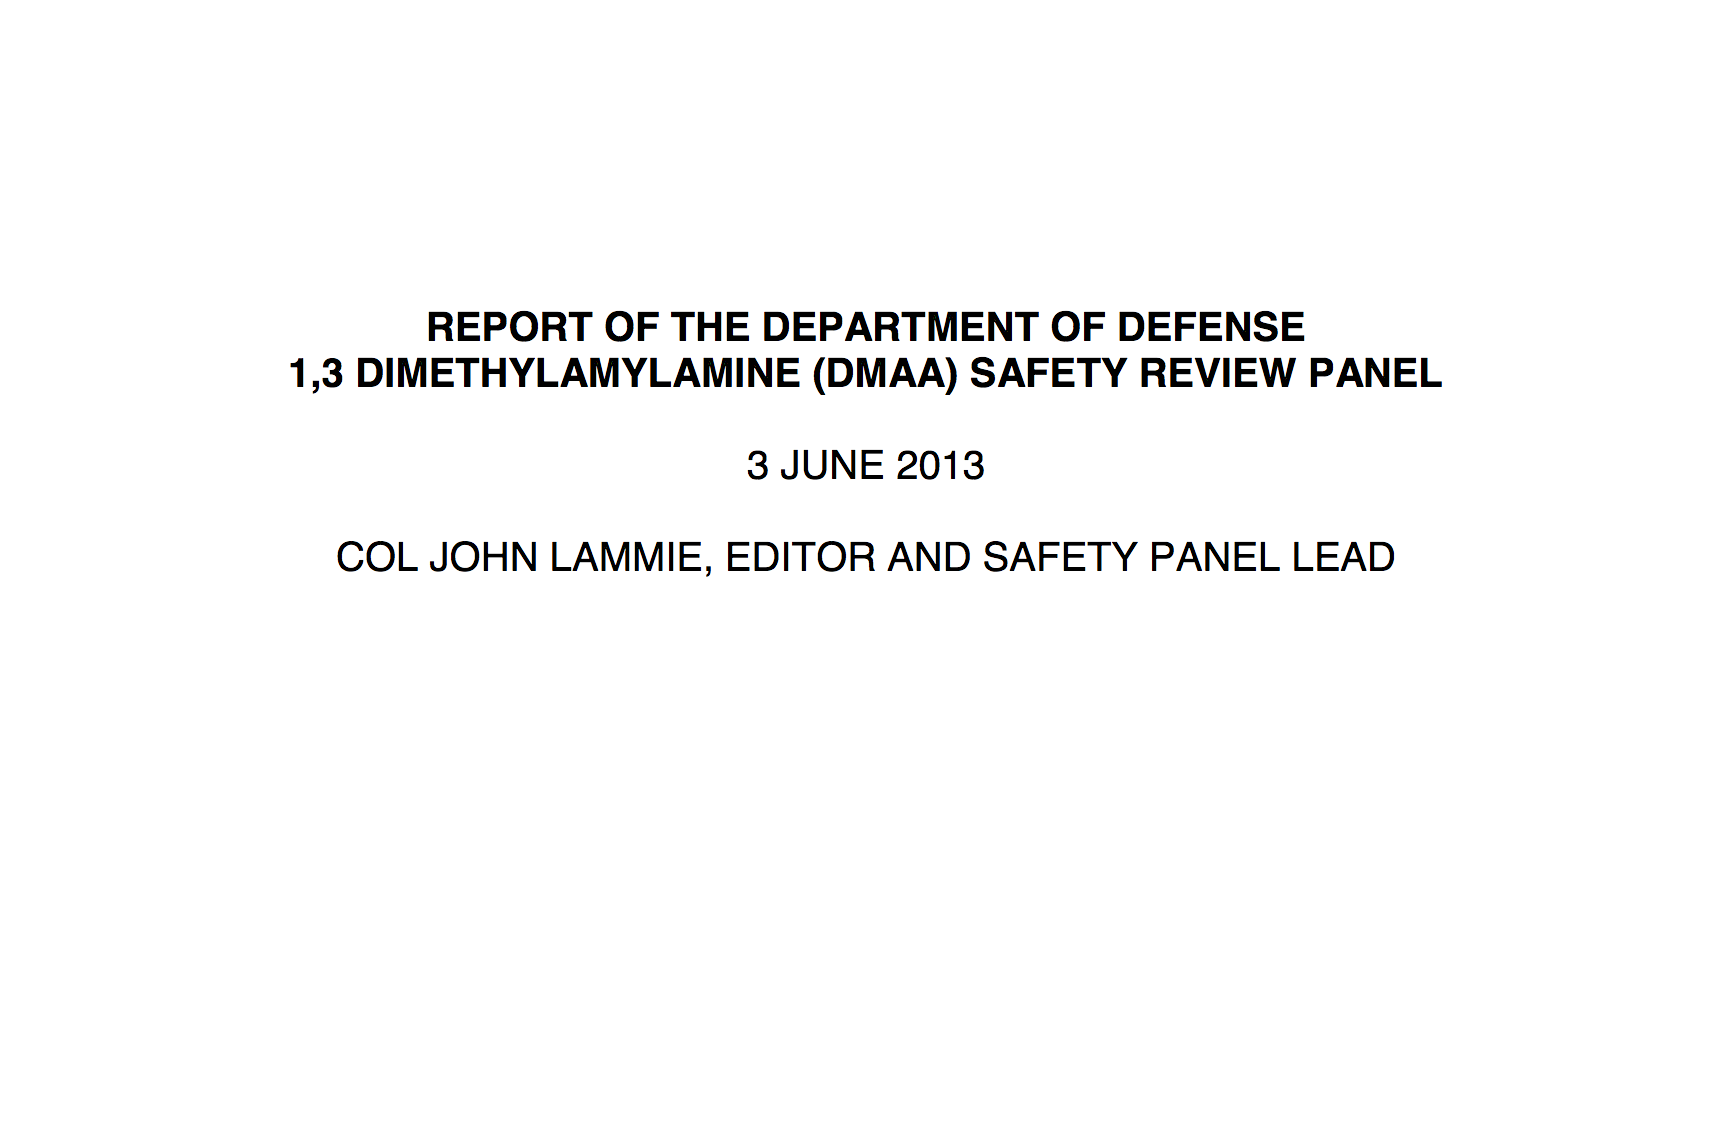 DMAA Safety Review Panel Report by DoD